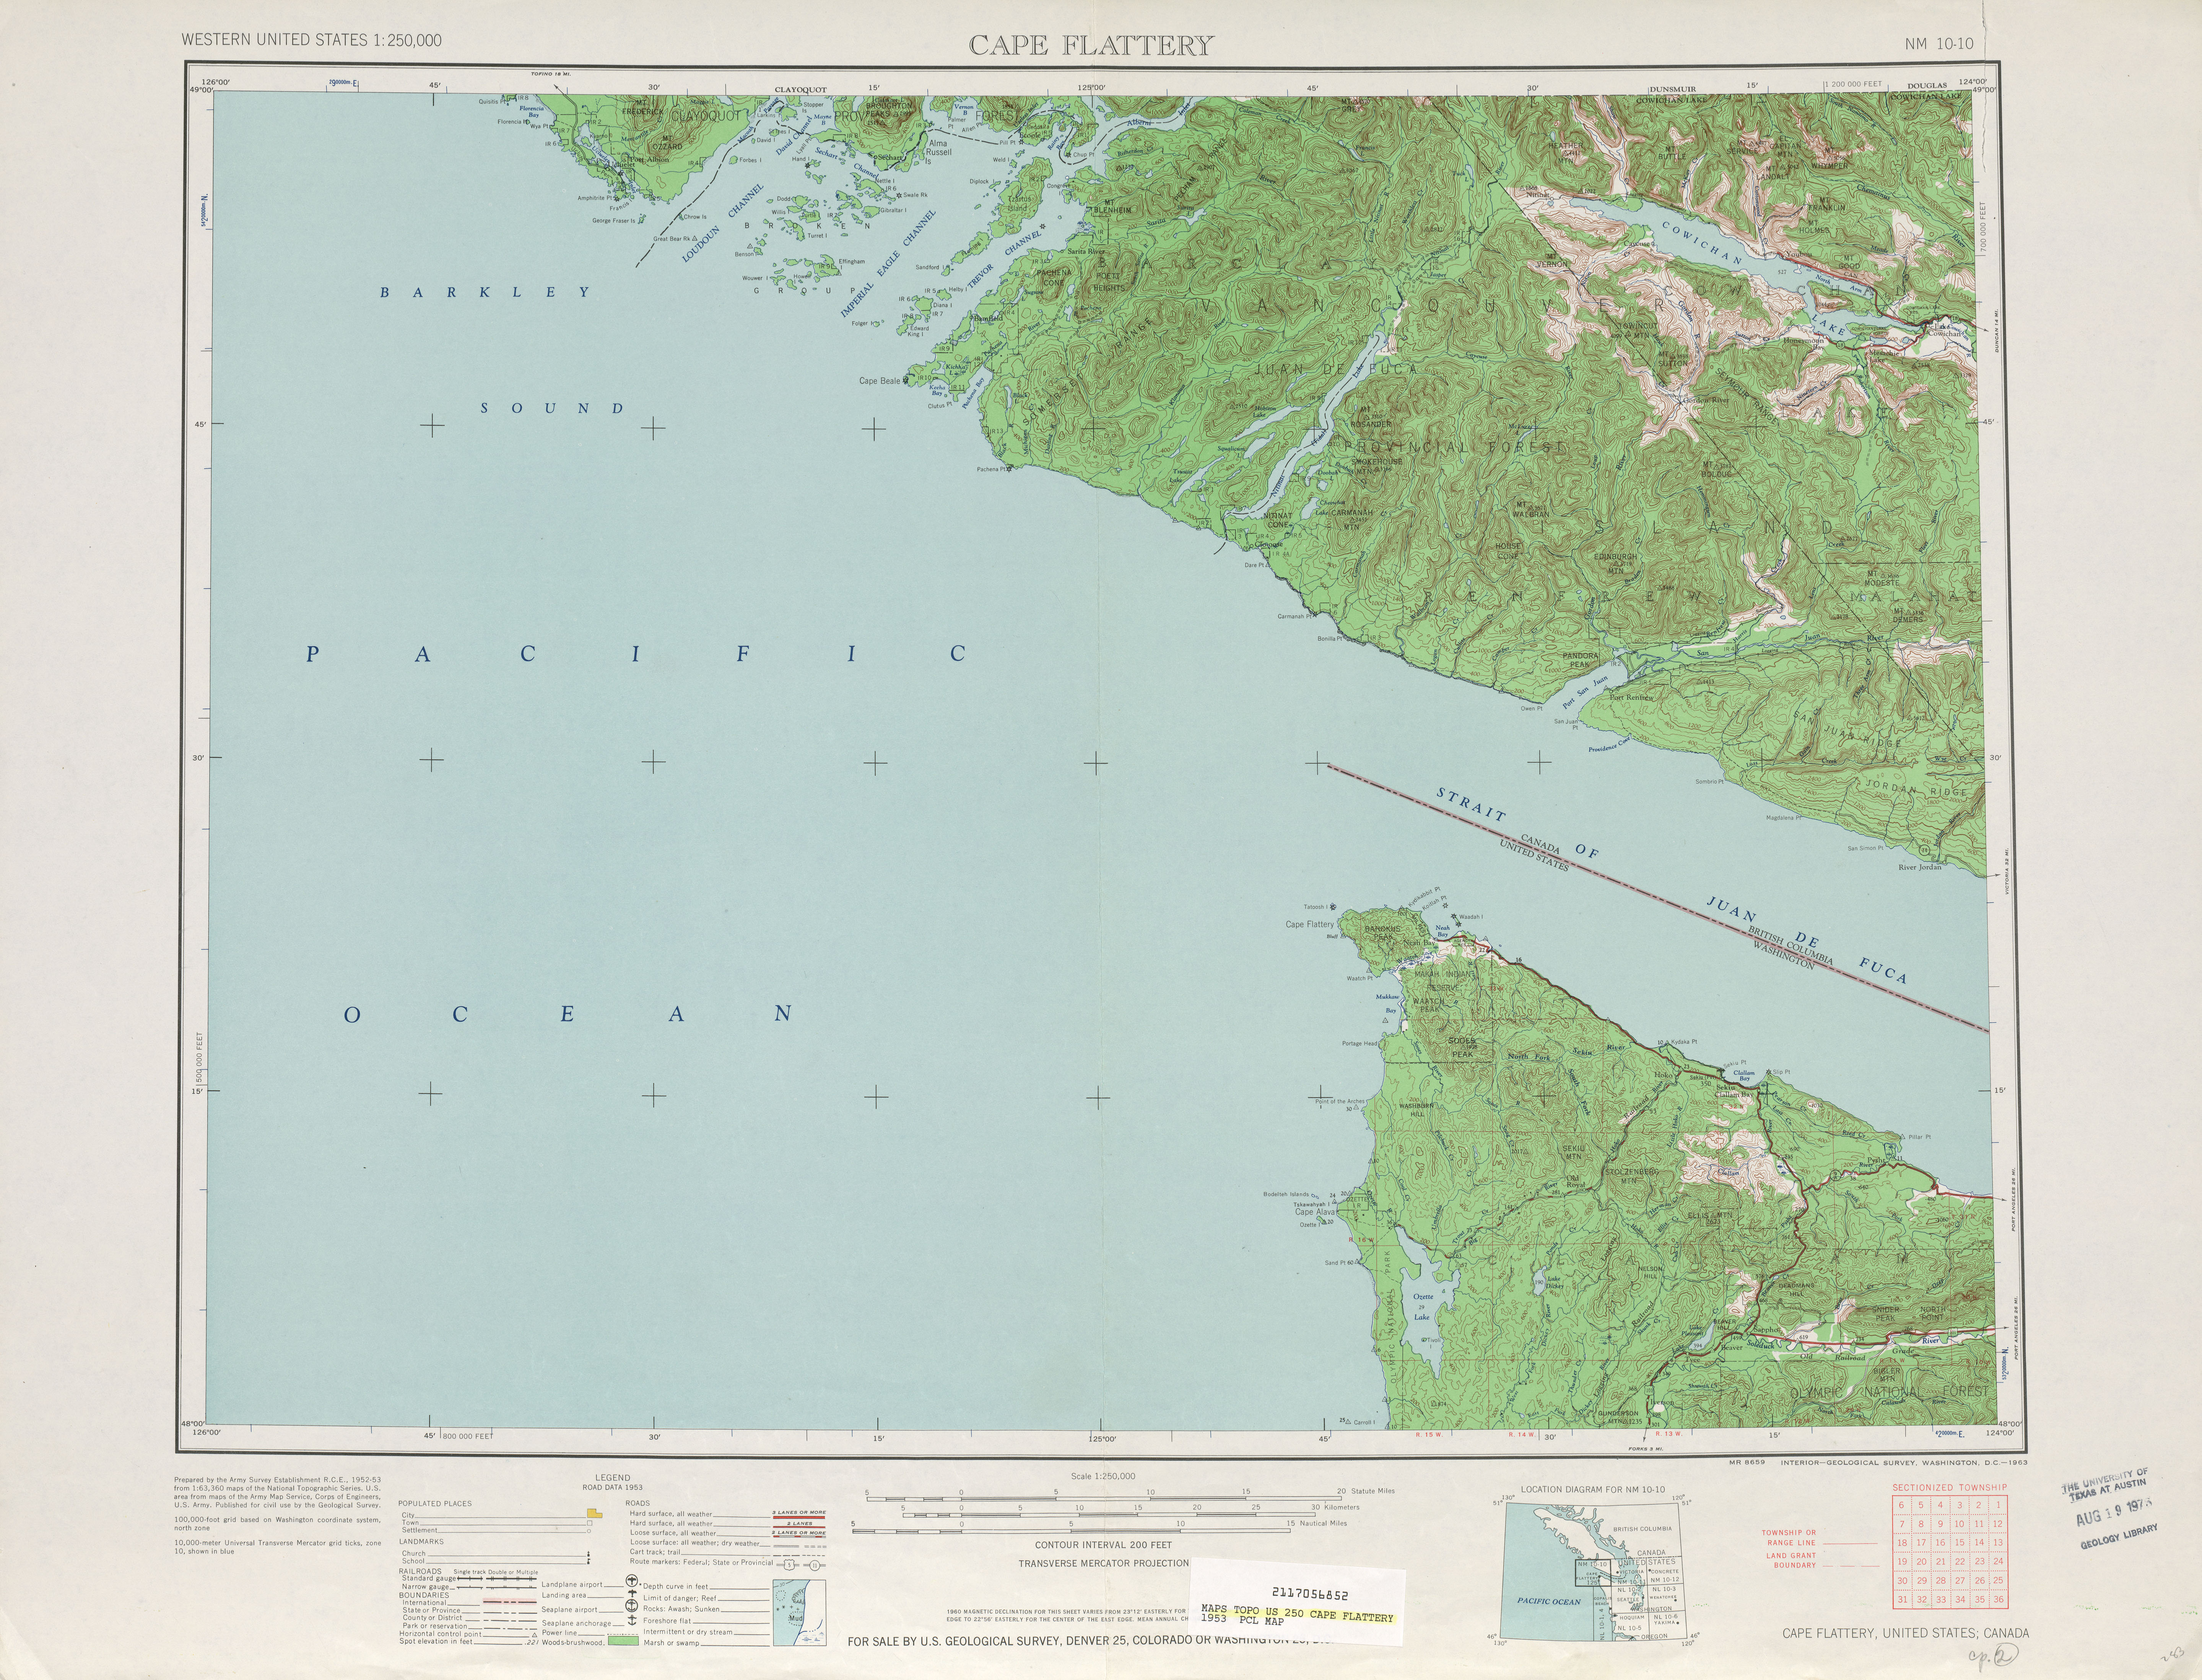 Cape Flattery Topographic Map Sheet, United States 1953